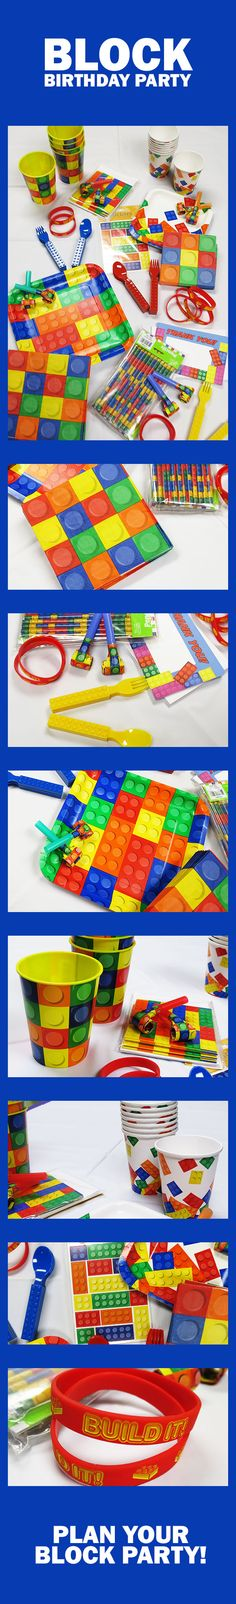 Lego party ideas for Lego Birthday Parties! Our block party birthday supplies and Lego decorations  make it easy to assemble a memorable party that all your party guests will enjoy. Featuring tableware, favors, balloons, & more! Plus, there's a few Lego themed party supplies available. Start planning now…